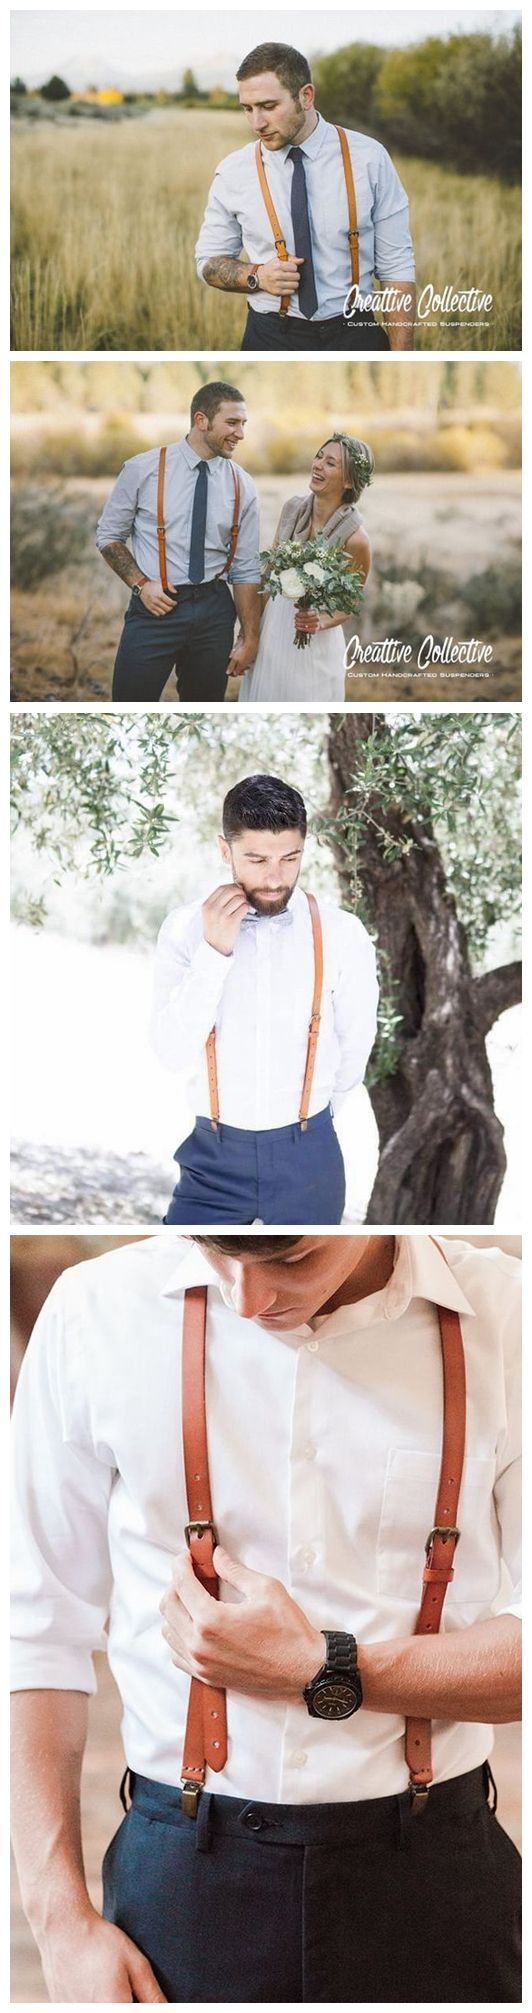 GENUINE LEATHER SUSPENDERS GROOMSMAN WEDDING SUSPENDERS LEATHER GOODS FOR MEN